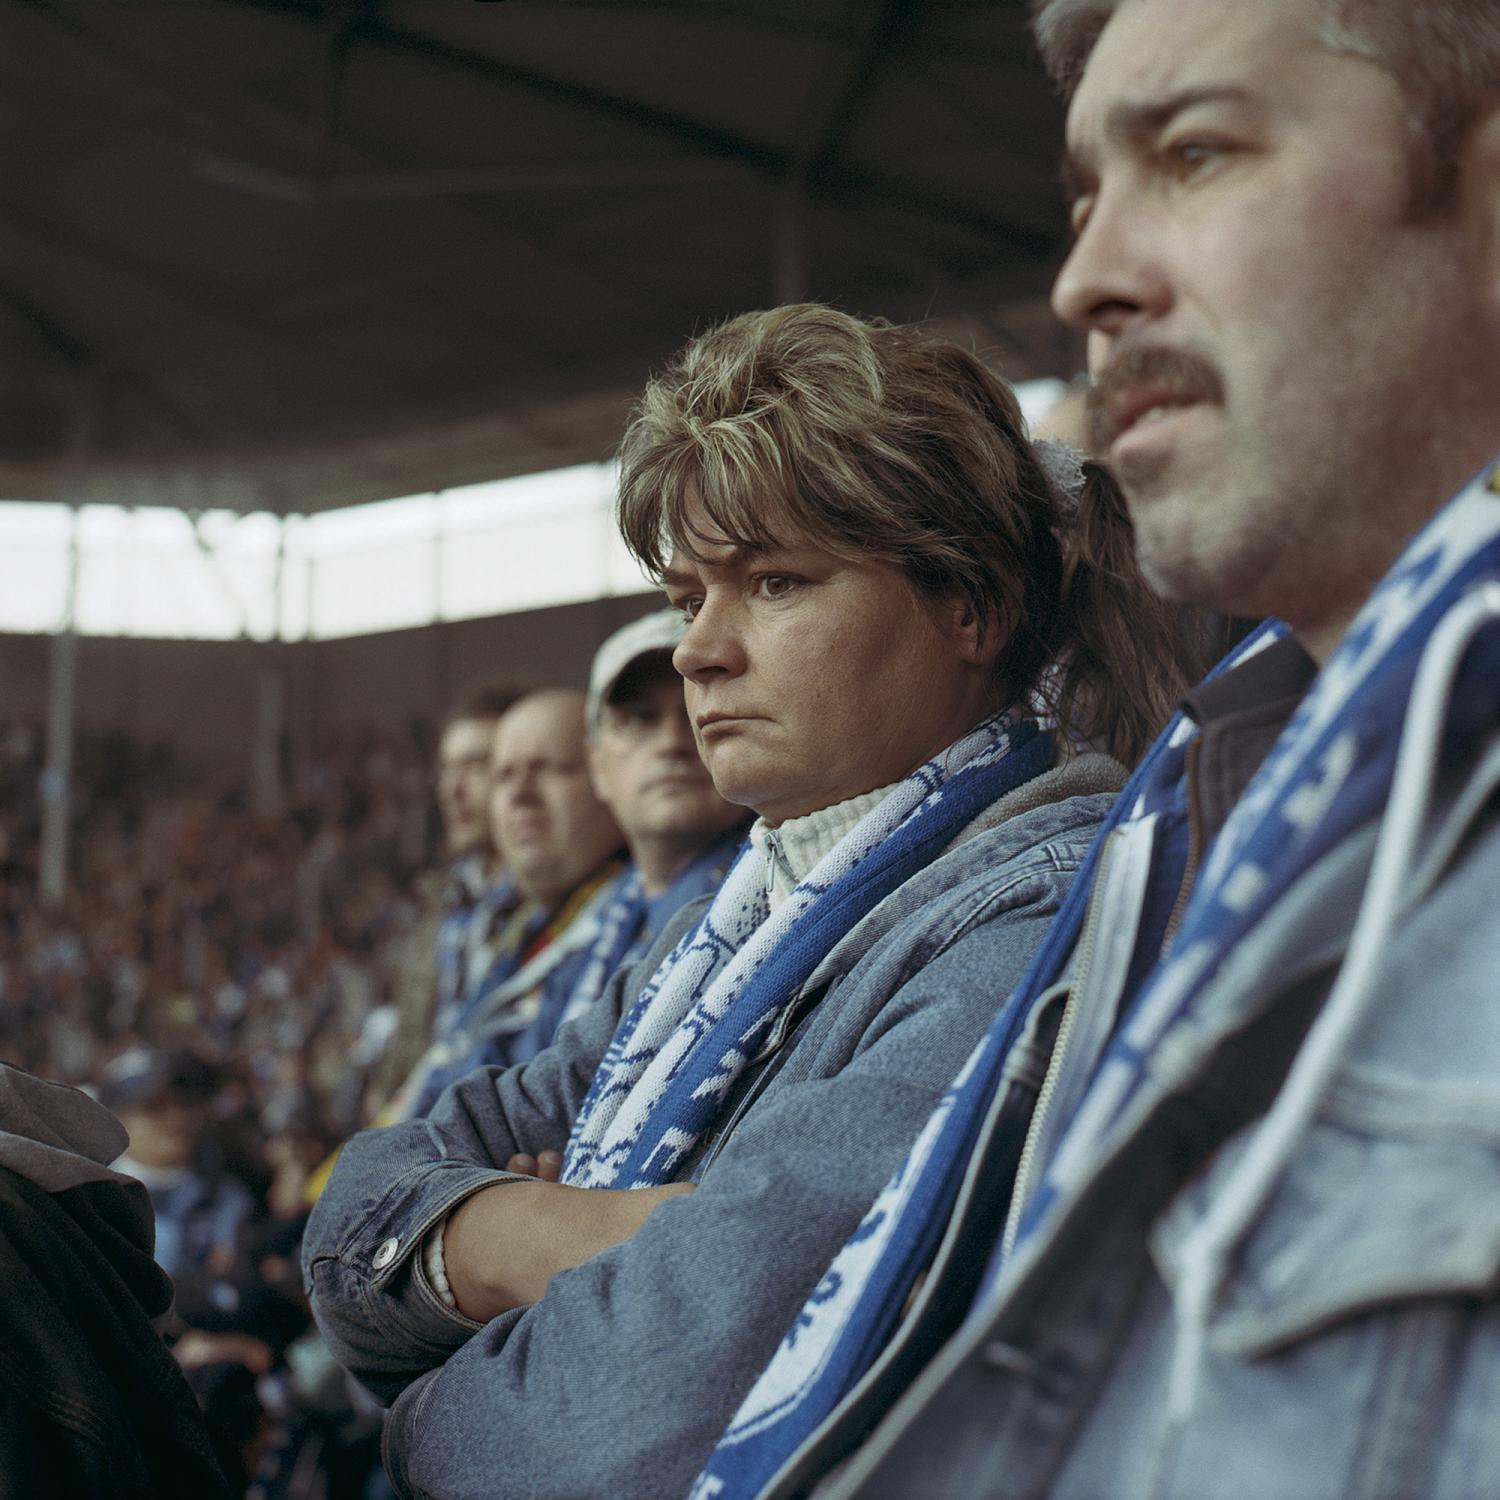 Supporters focus on the game from the terraces of the new stadium in Magdeburg. The stadium was named under the most successful and beloved trainer of the team in the 70's, Heinz Krueger.